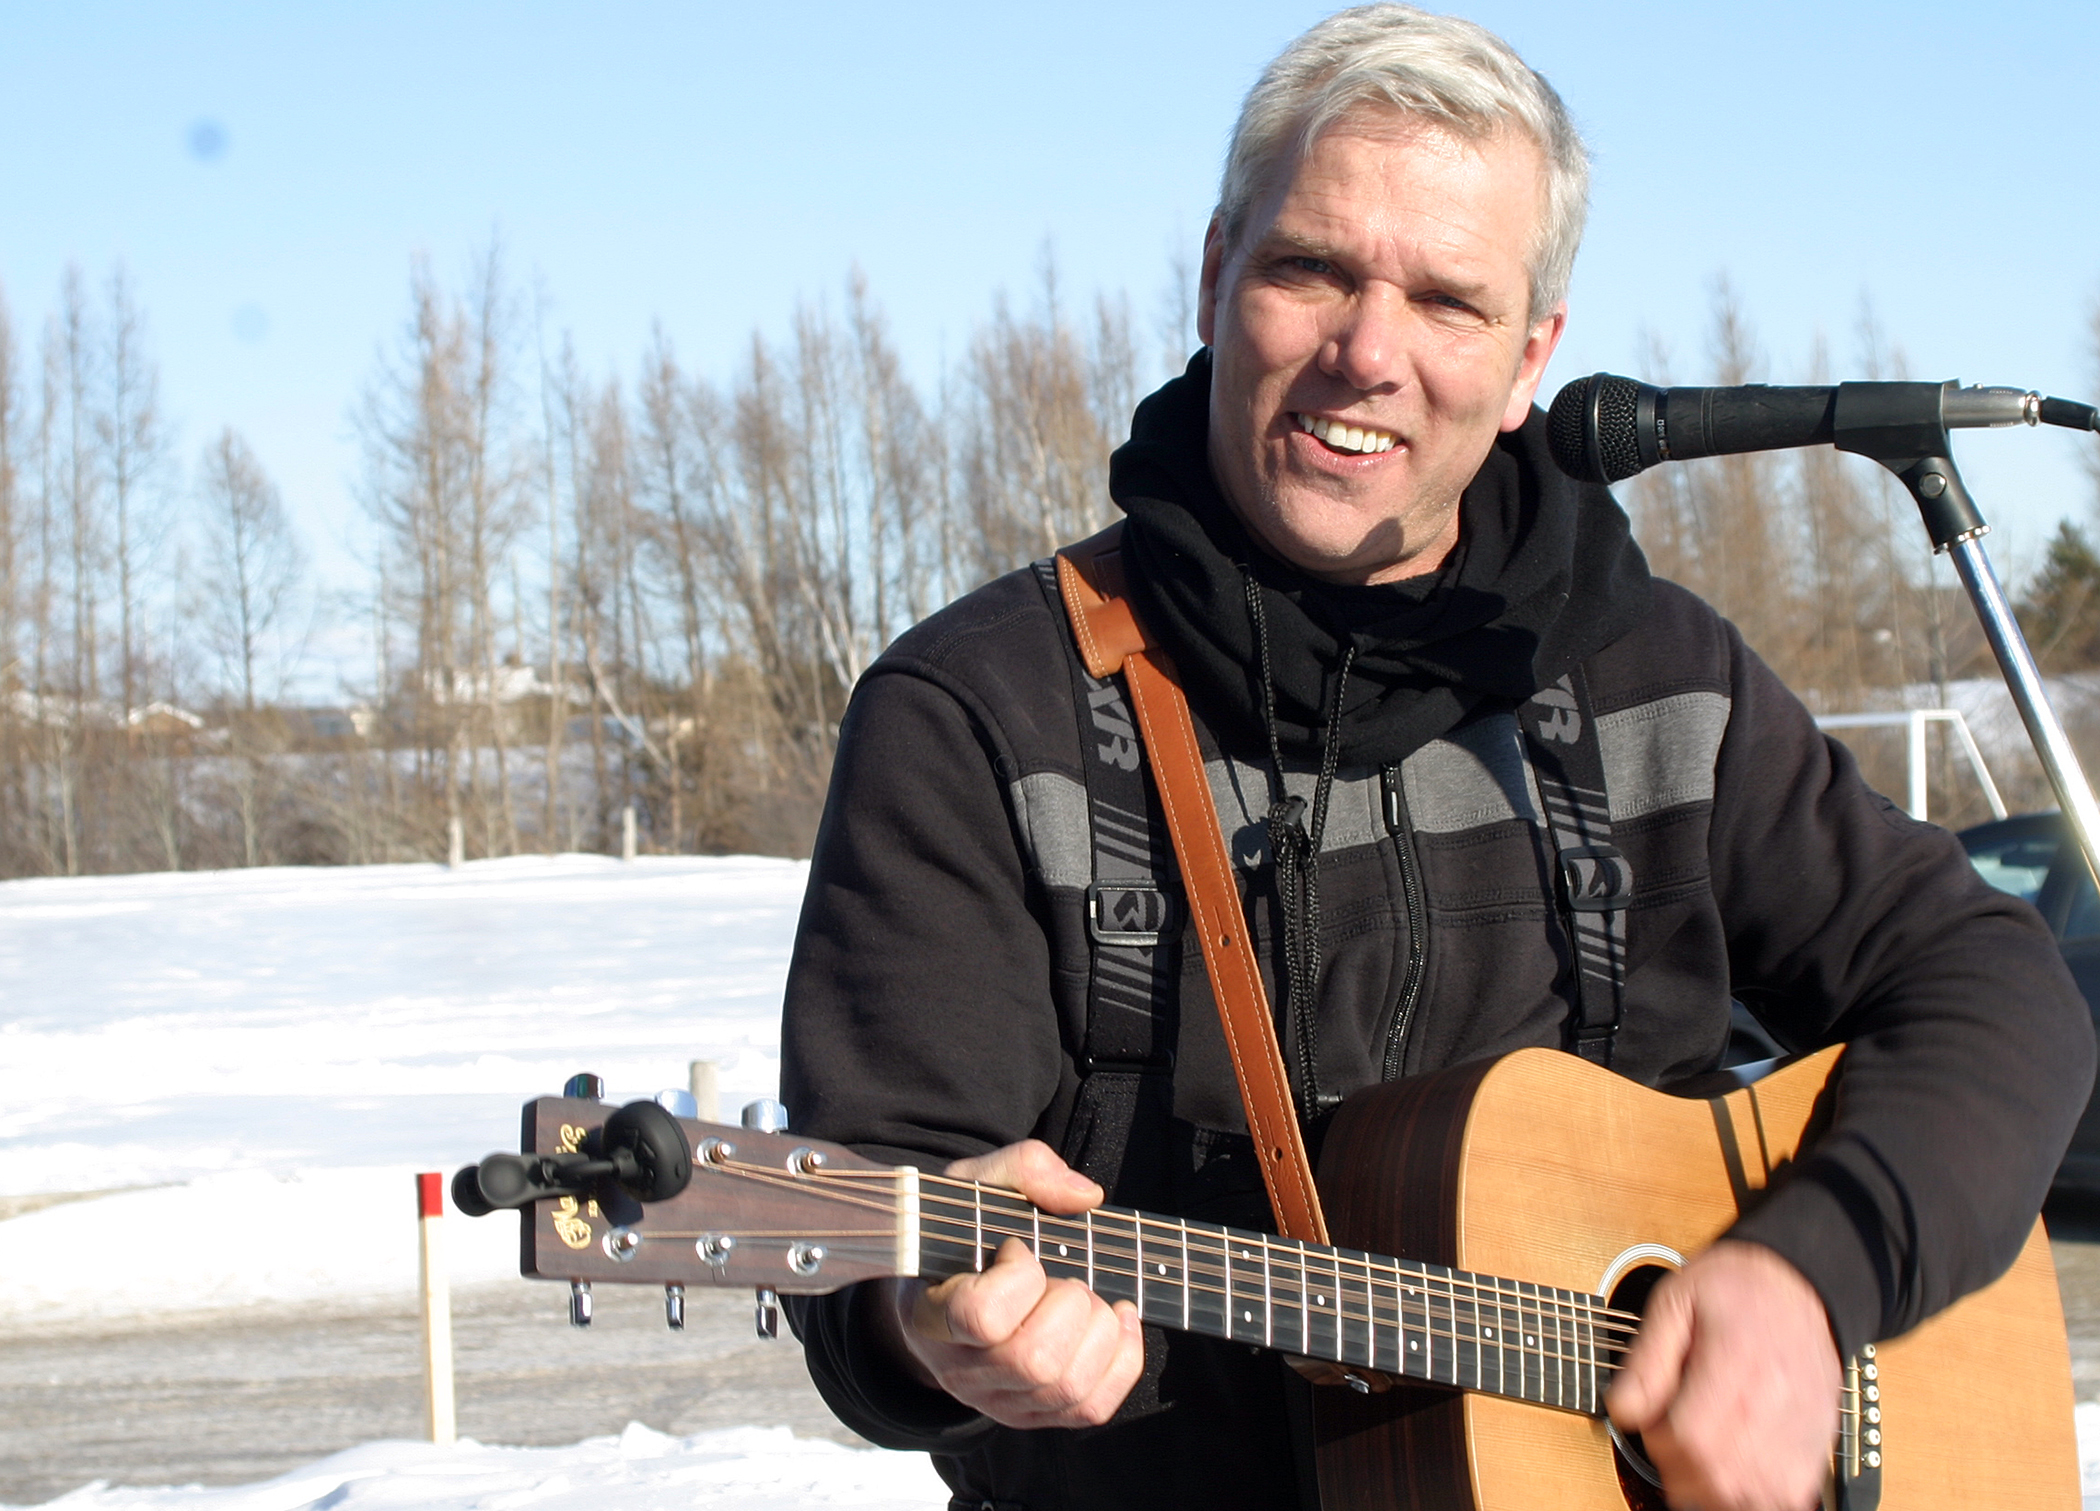 WCDR co-chair and DCA President Greg Patacairk broke out the guitar and rocked the ODR. Photo by Jake Davies